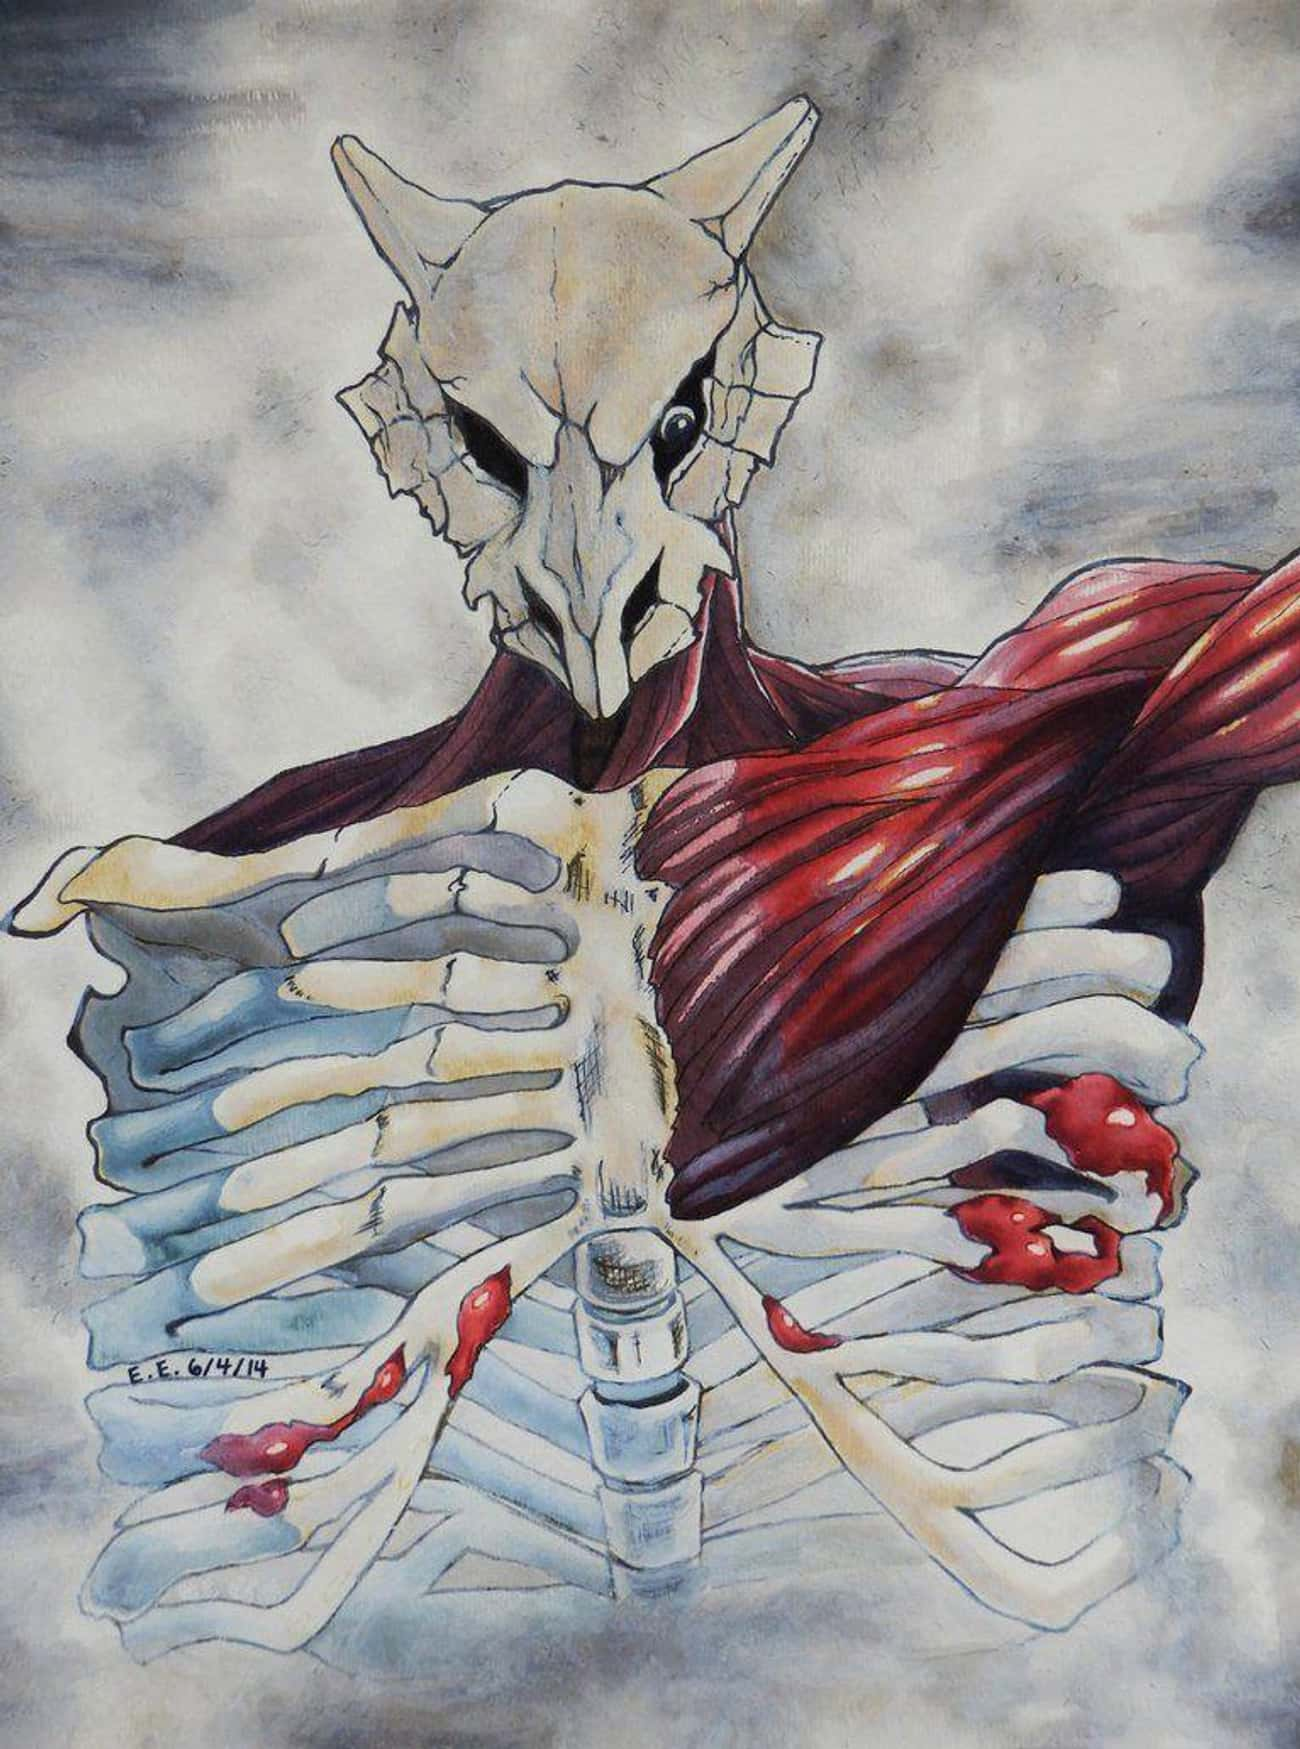 Colossal Cubone is listed (or ranked) 1 on the list This Artist Creates Horrifying Pokemon And Attack On Titan Crossovers